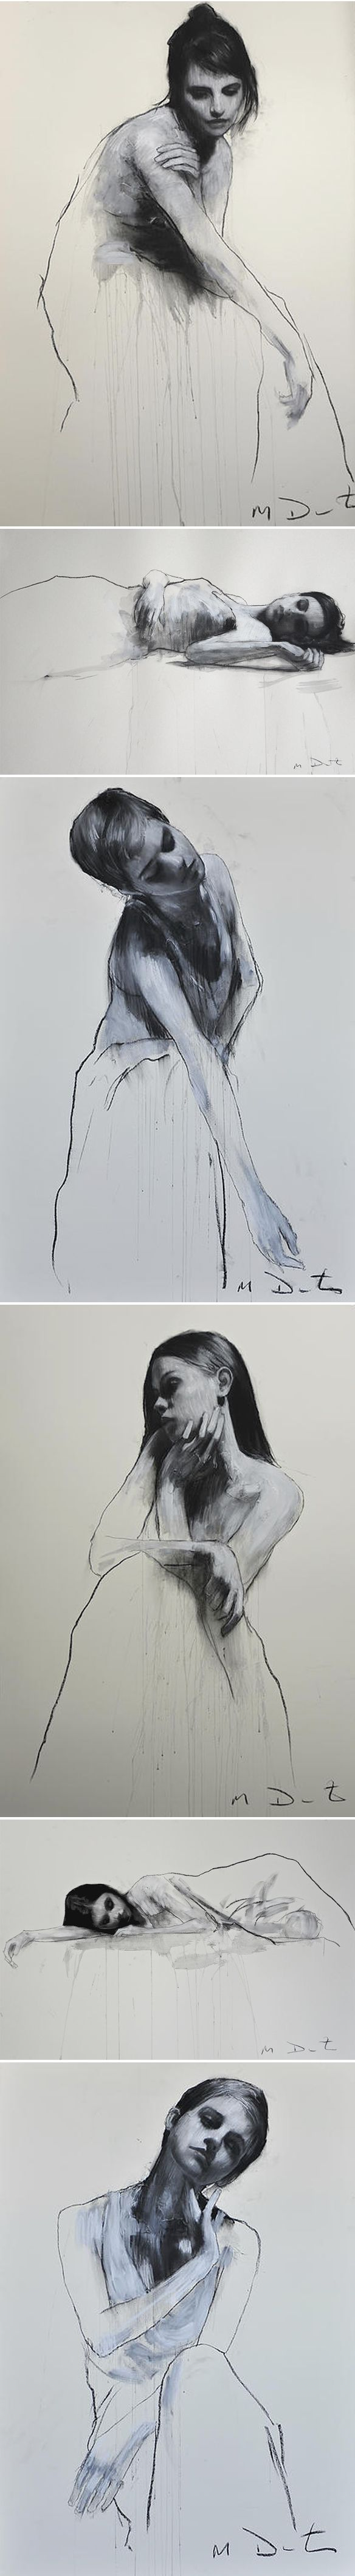 mark demsteader (The Jealous Curator)